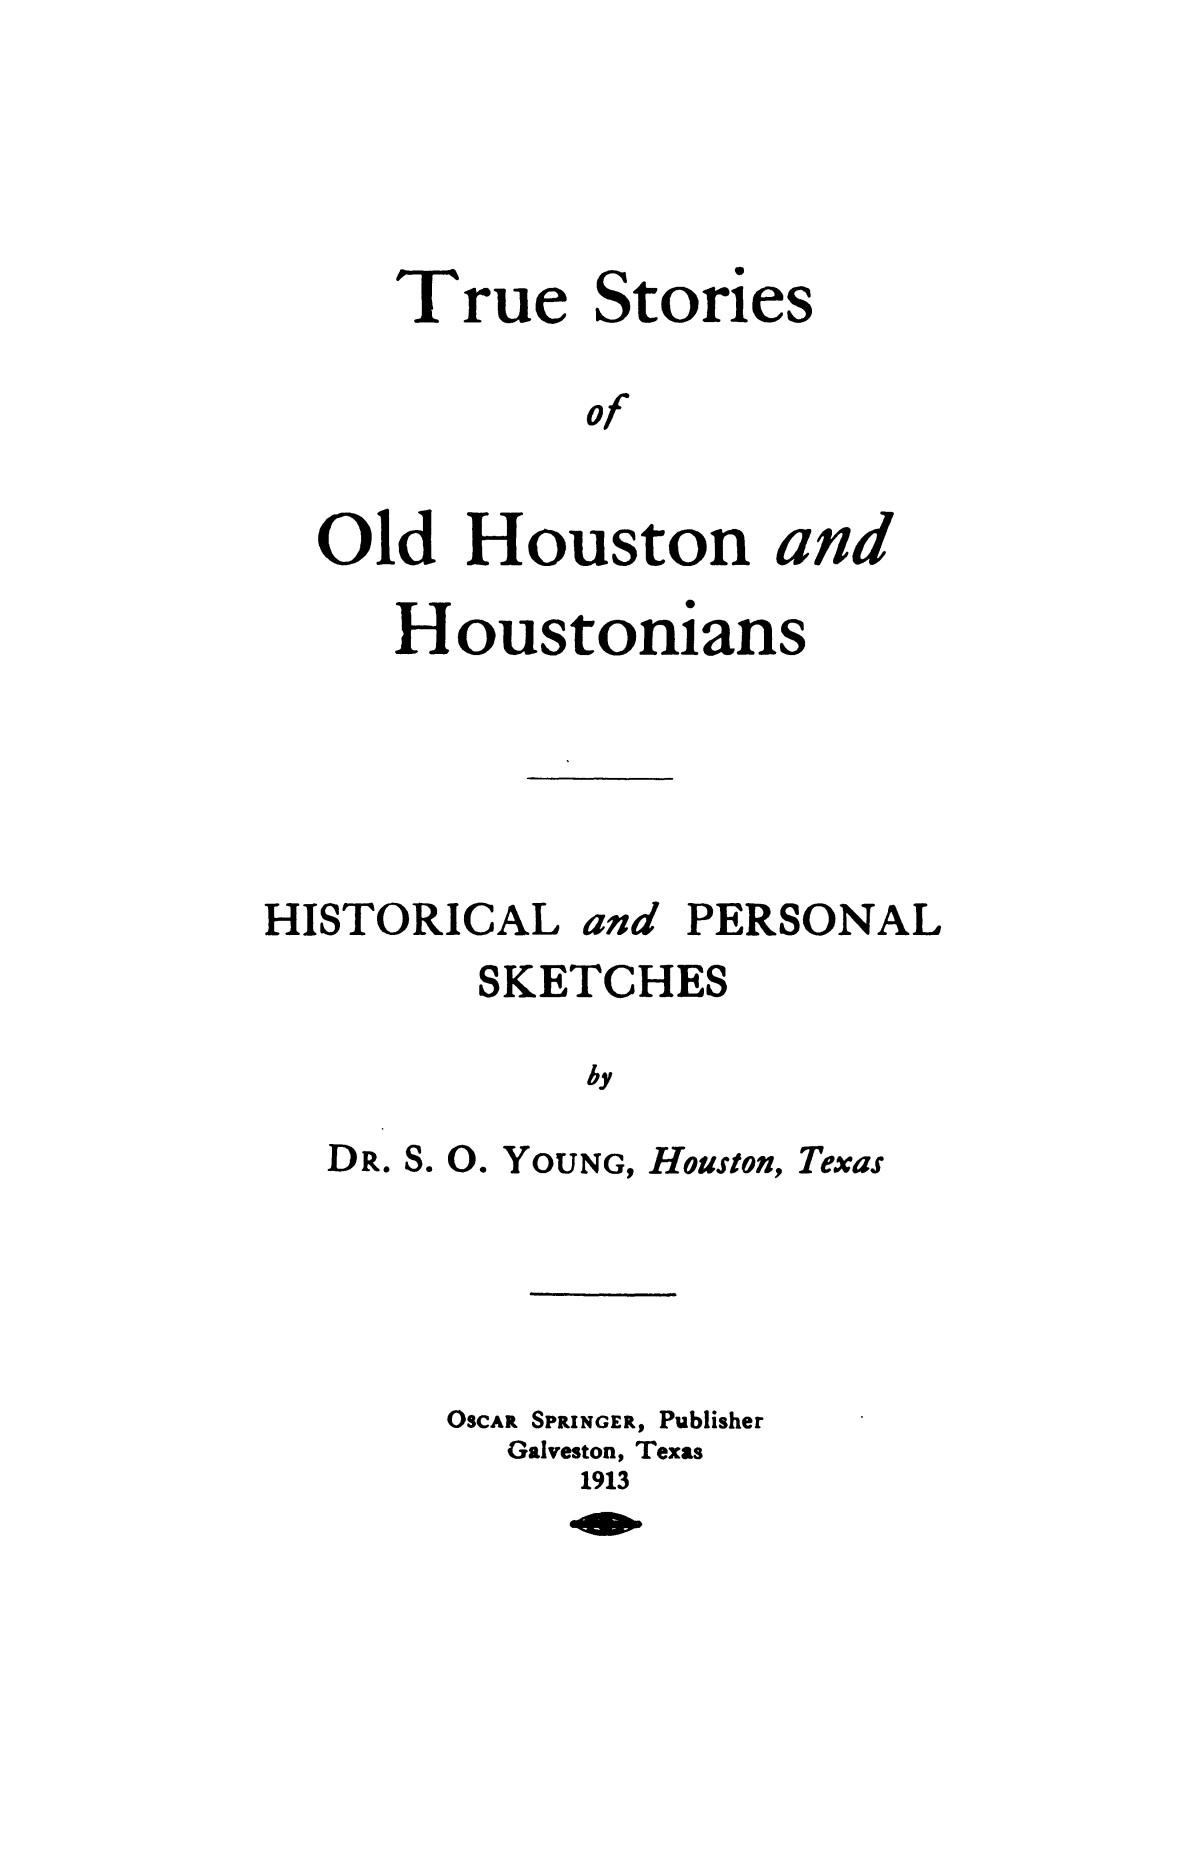 True stories of old Houston and Houstonians: historical and personal sketches / by S. O. Young.                                                                                                      4